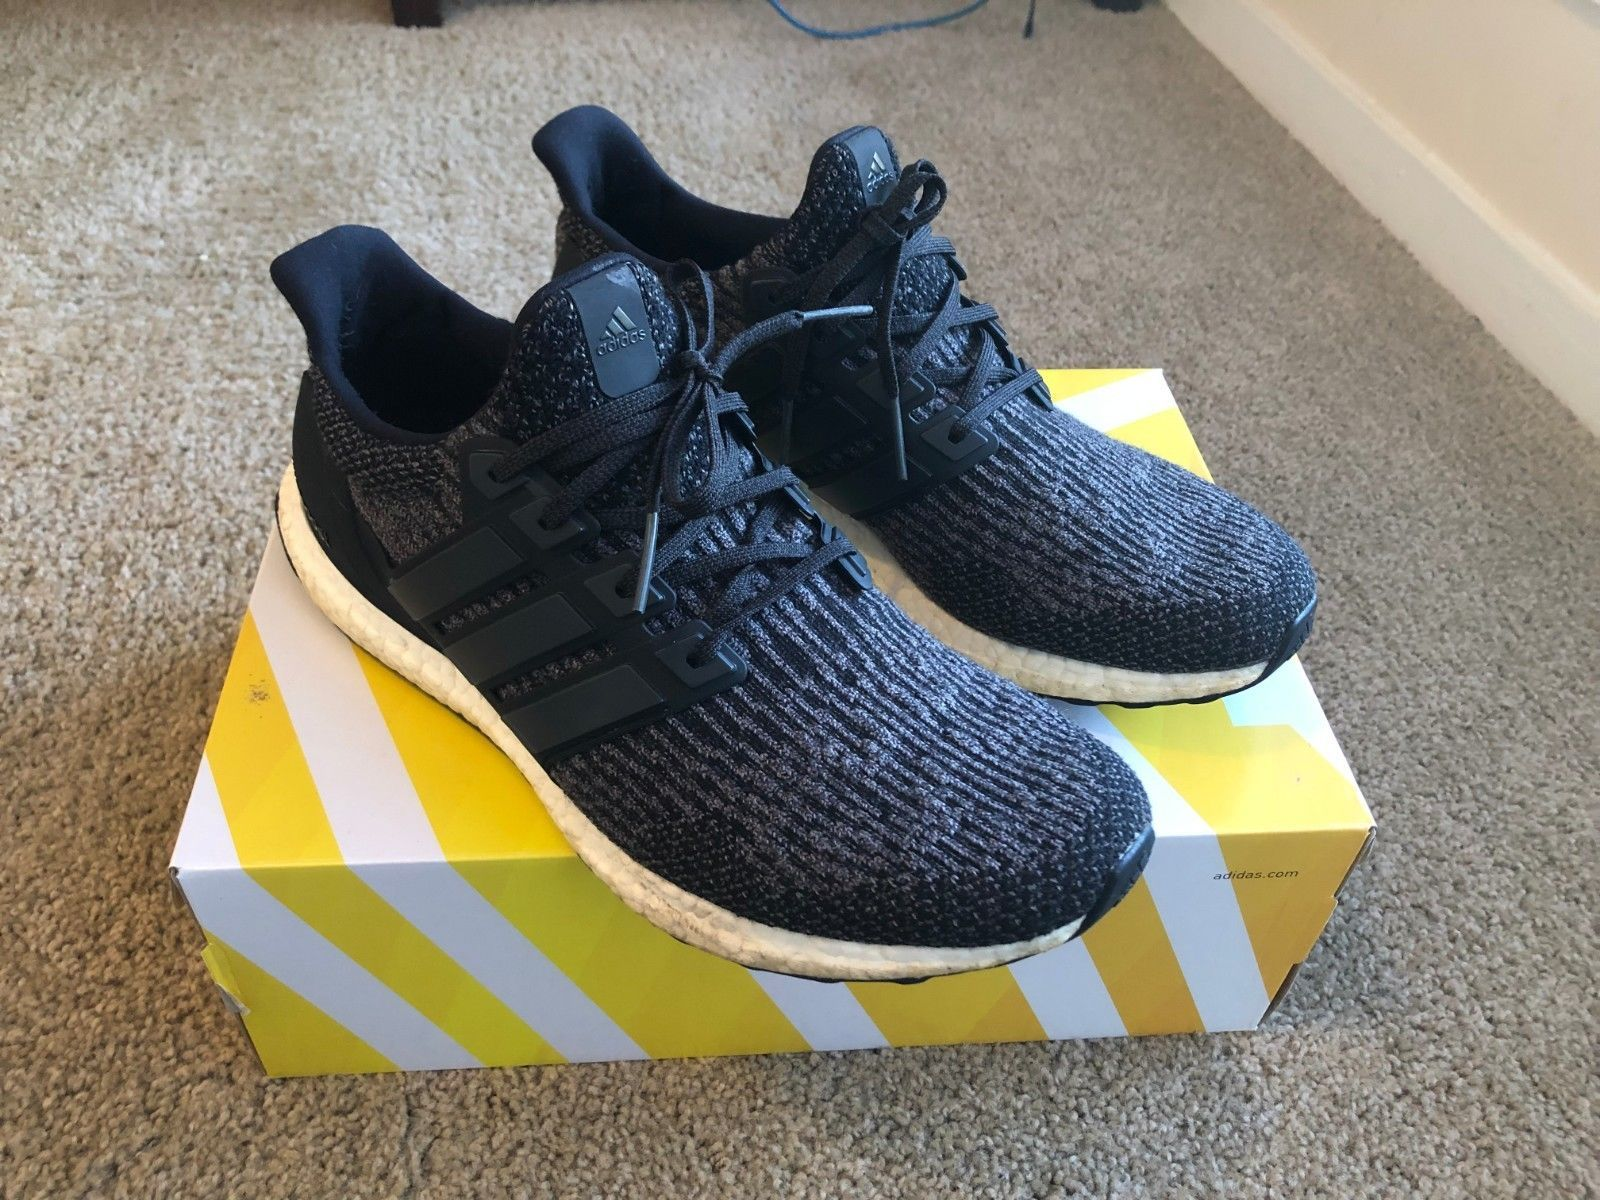 2e90fd1f4281e Details about ADIDAS Ultra BOOST 3.0 Utility Black Primeknit S80731 ...